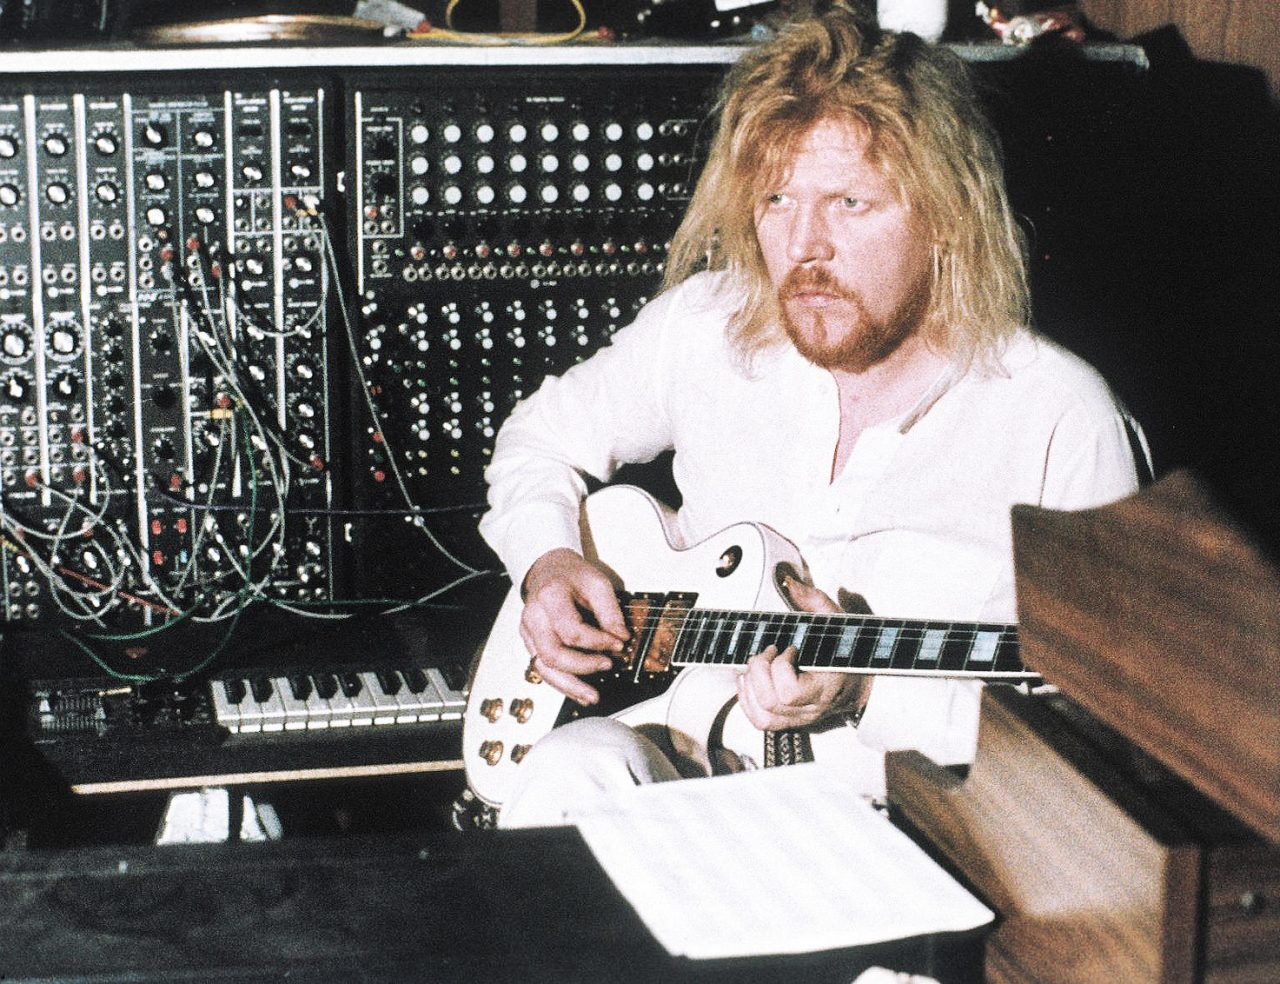 https://www.artsandcollections.com/wp-content/uploads/2020/01/EDGAR-FROESE-TD-1975-1280x984.jpg